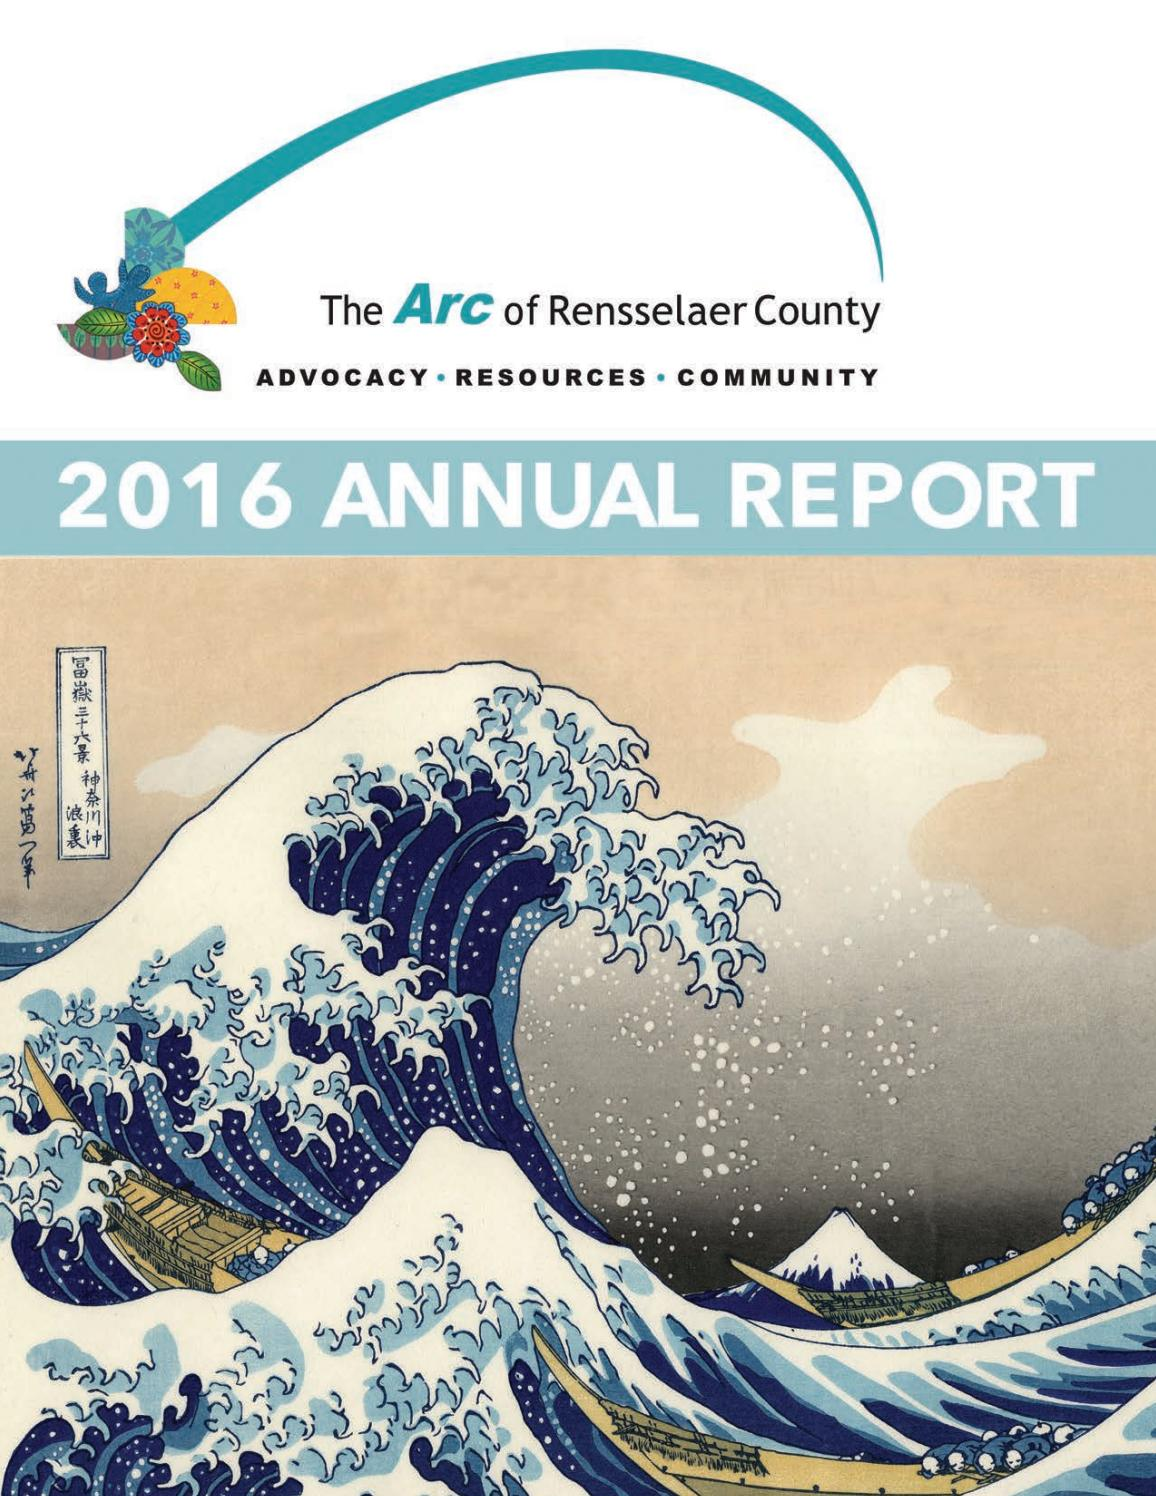 2016 Annual Report by The Arc of Rensselaer County - issuu